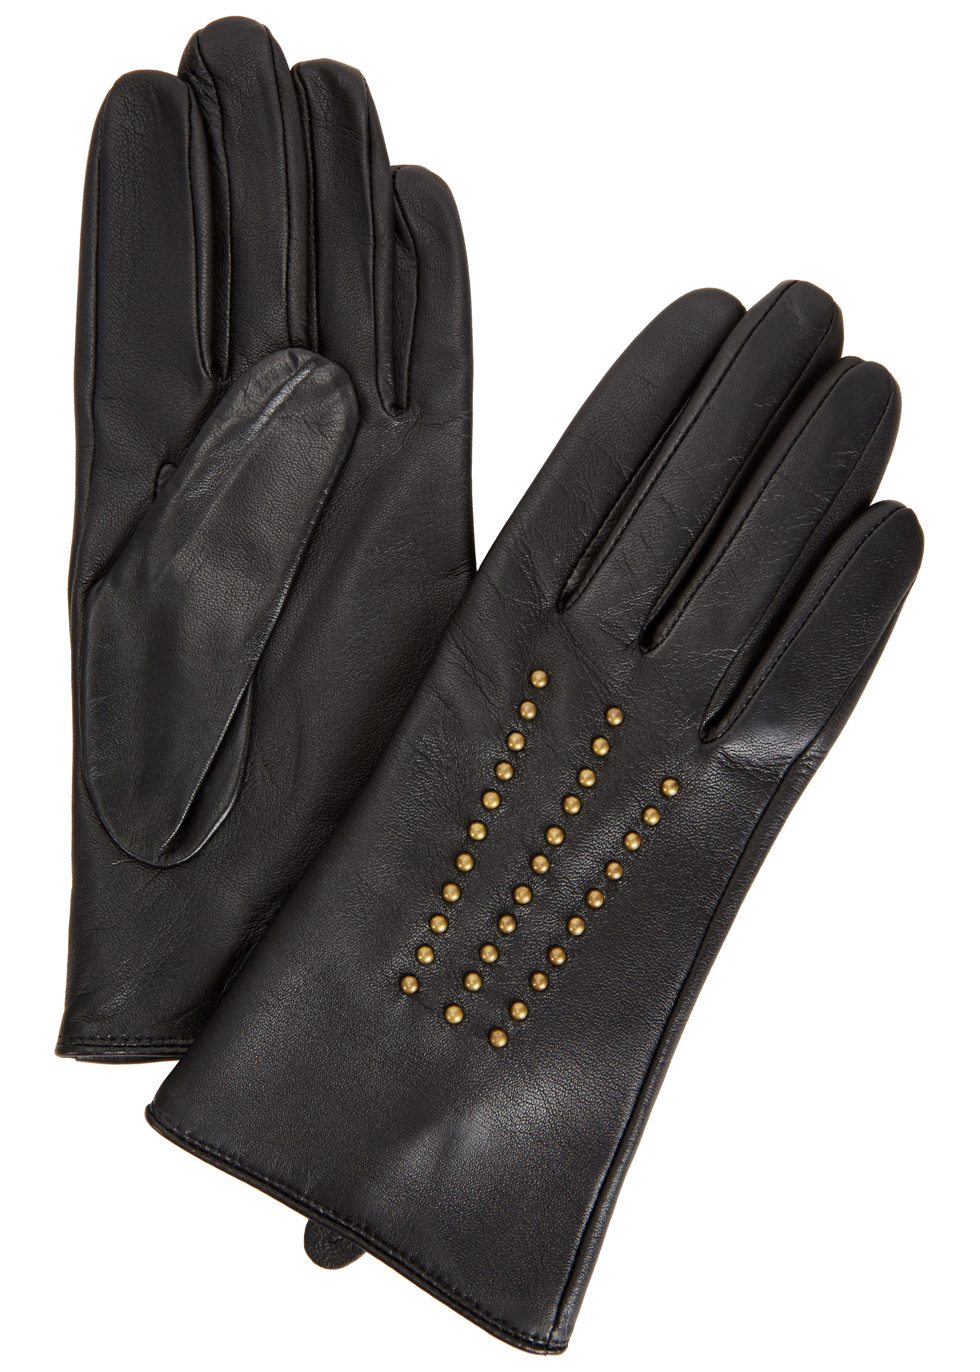 Marie Studded Leather Gloves - predominant colour: black; occasions: casual, creative work; type of pattern: standard; embellishment: studs; style: standard; length: wrist; material: leather; pattern: plain; season: a/w 2016; wardrobe: highlight